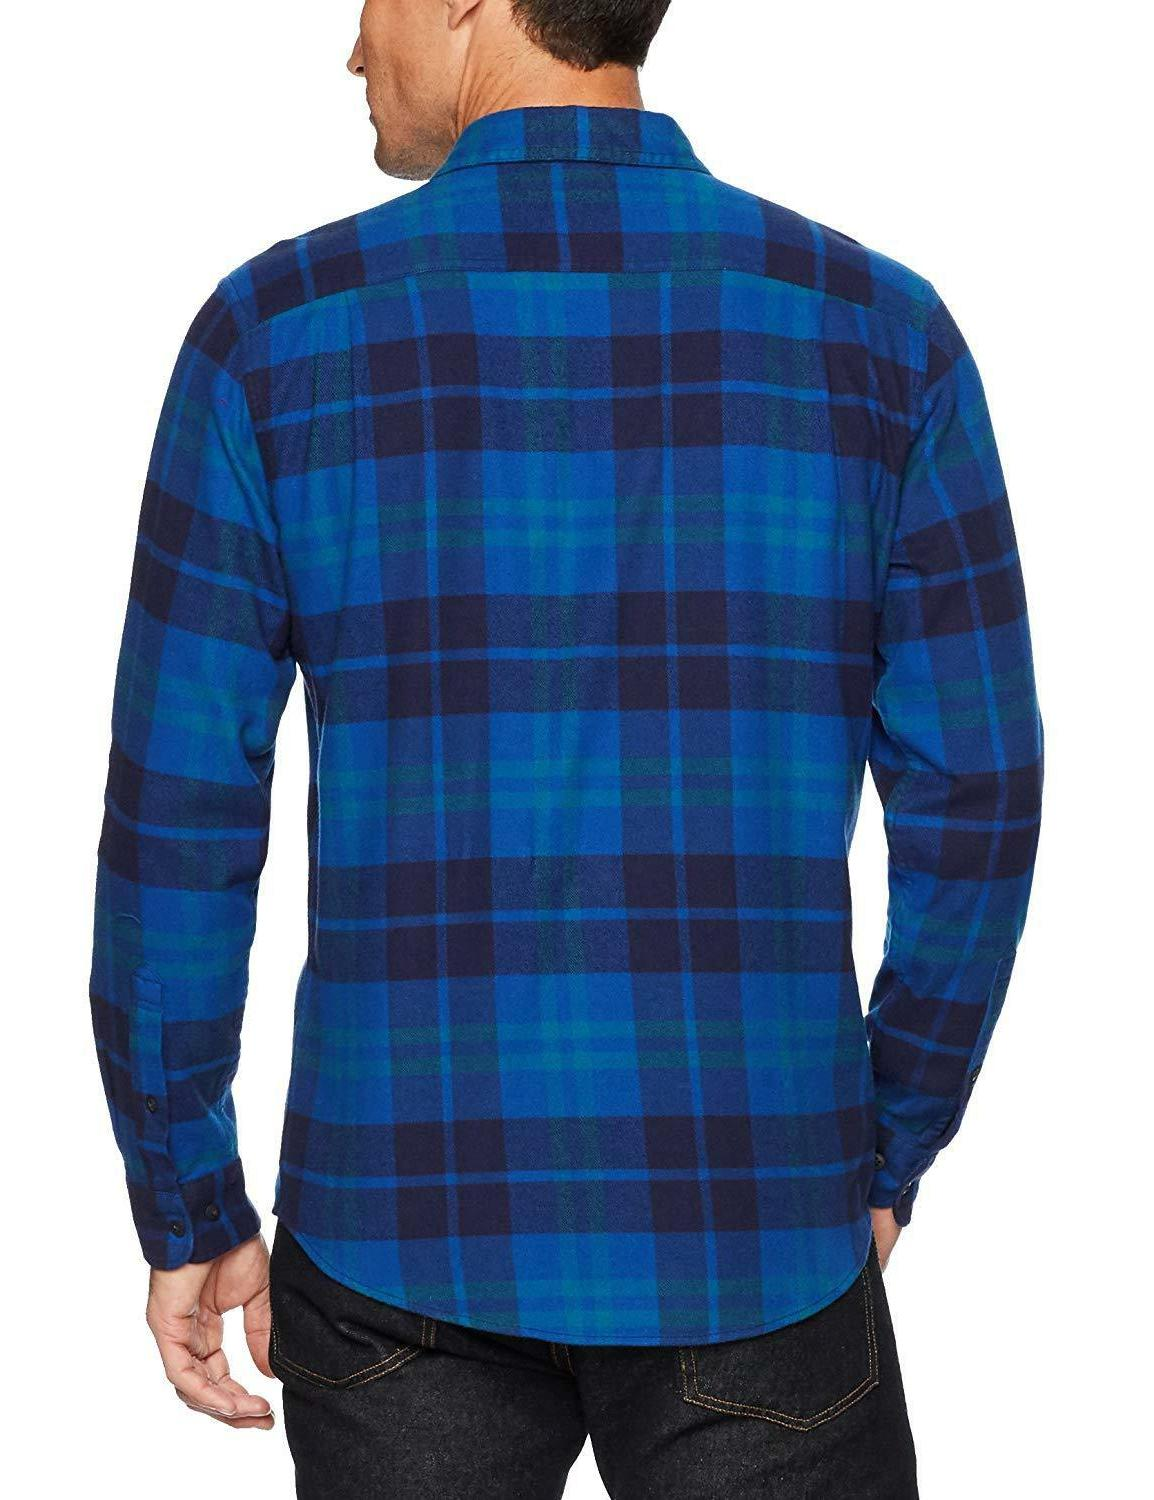 Amazon Men's Long-Sleeve Shirt